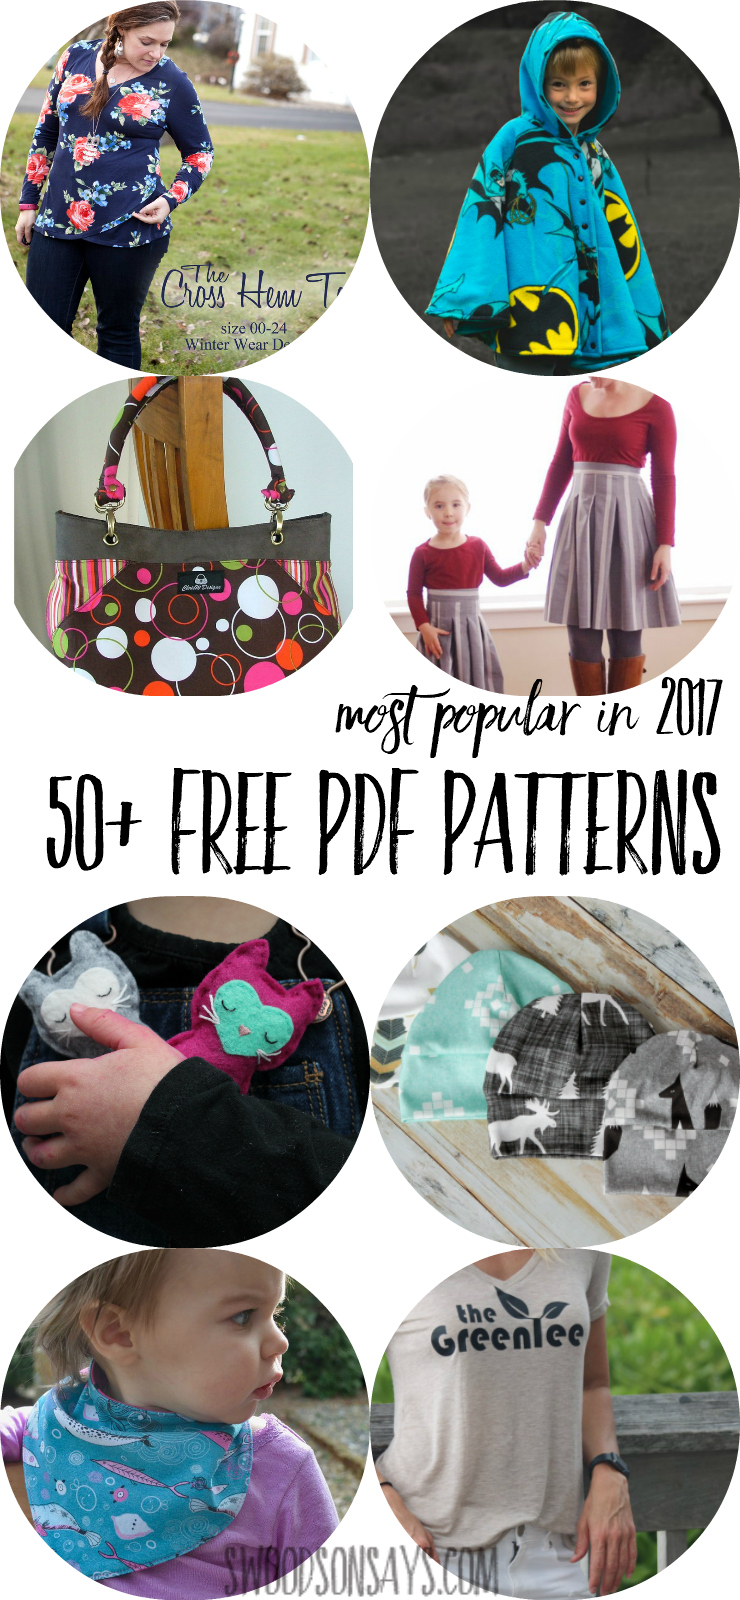 50 most popular free pdf patterns in 2017 swoodson says check out this huge list of free pdf sewing patterns for kids adults home jeuxipadfo Gallery